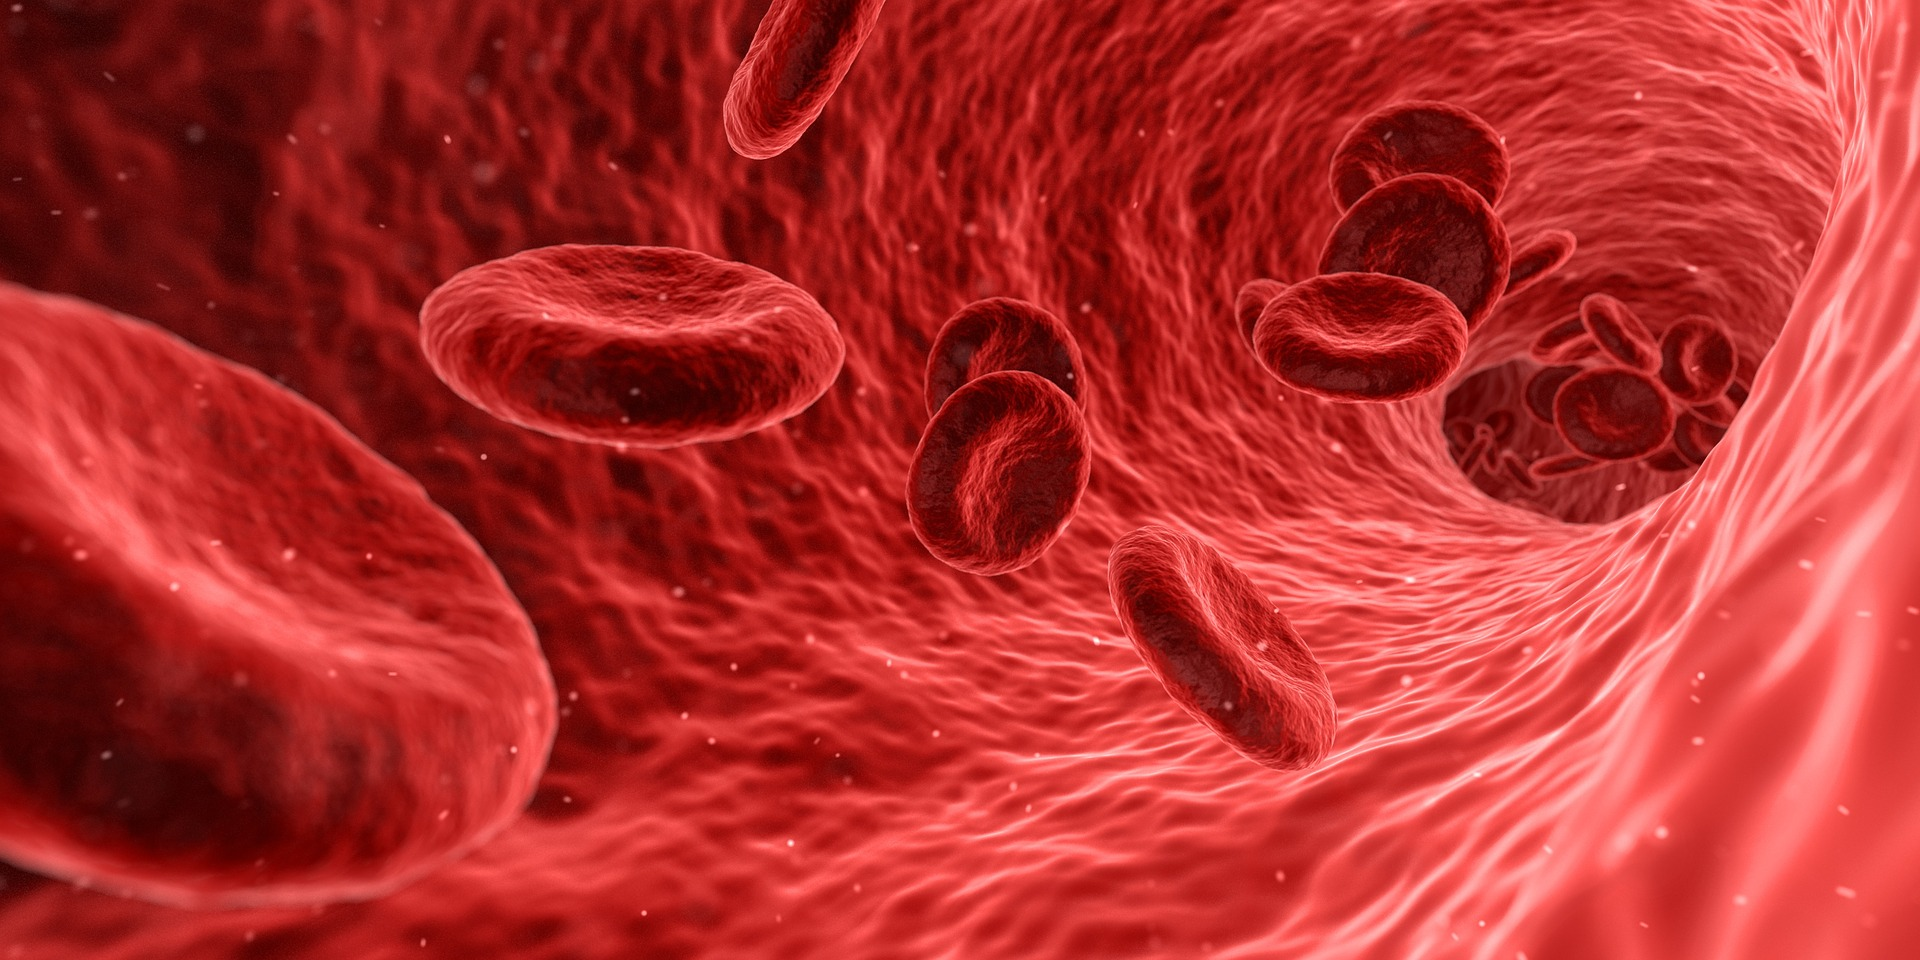 Vitamin B12 stimulates red blood cell production